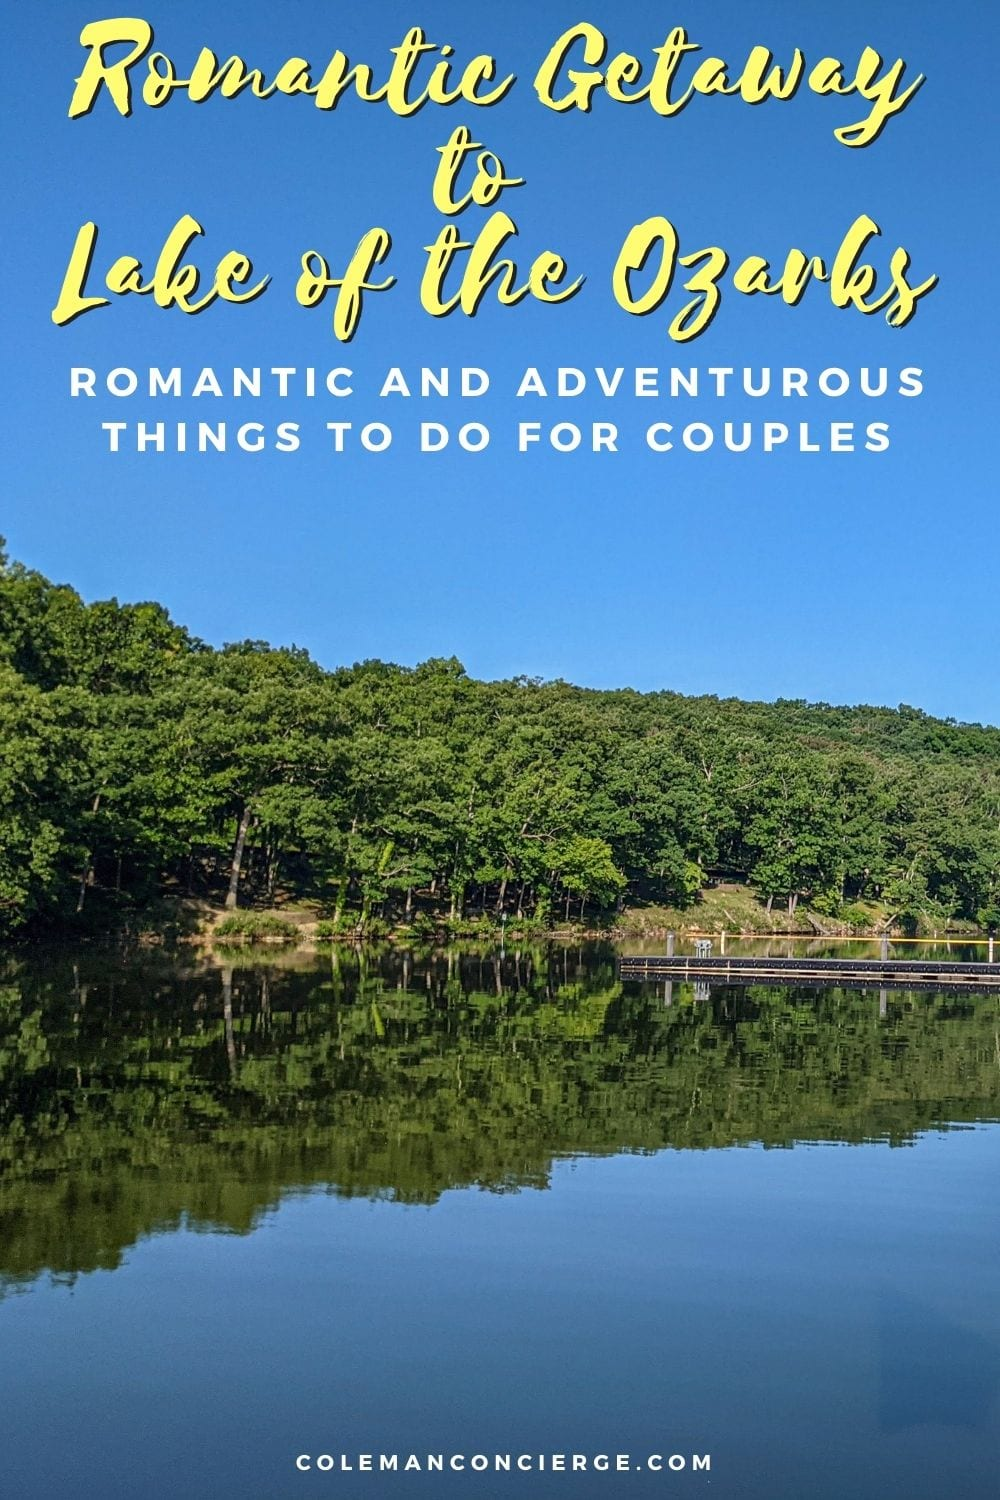 Lake of the Ozarks State Park